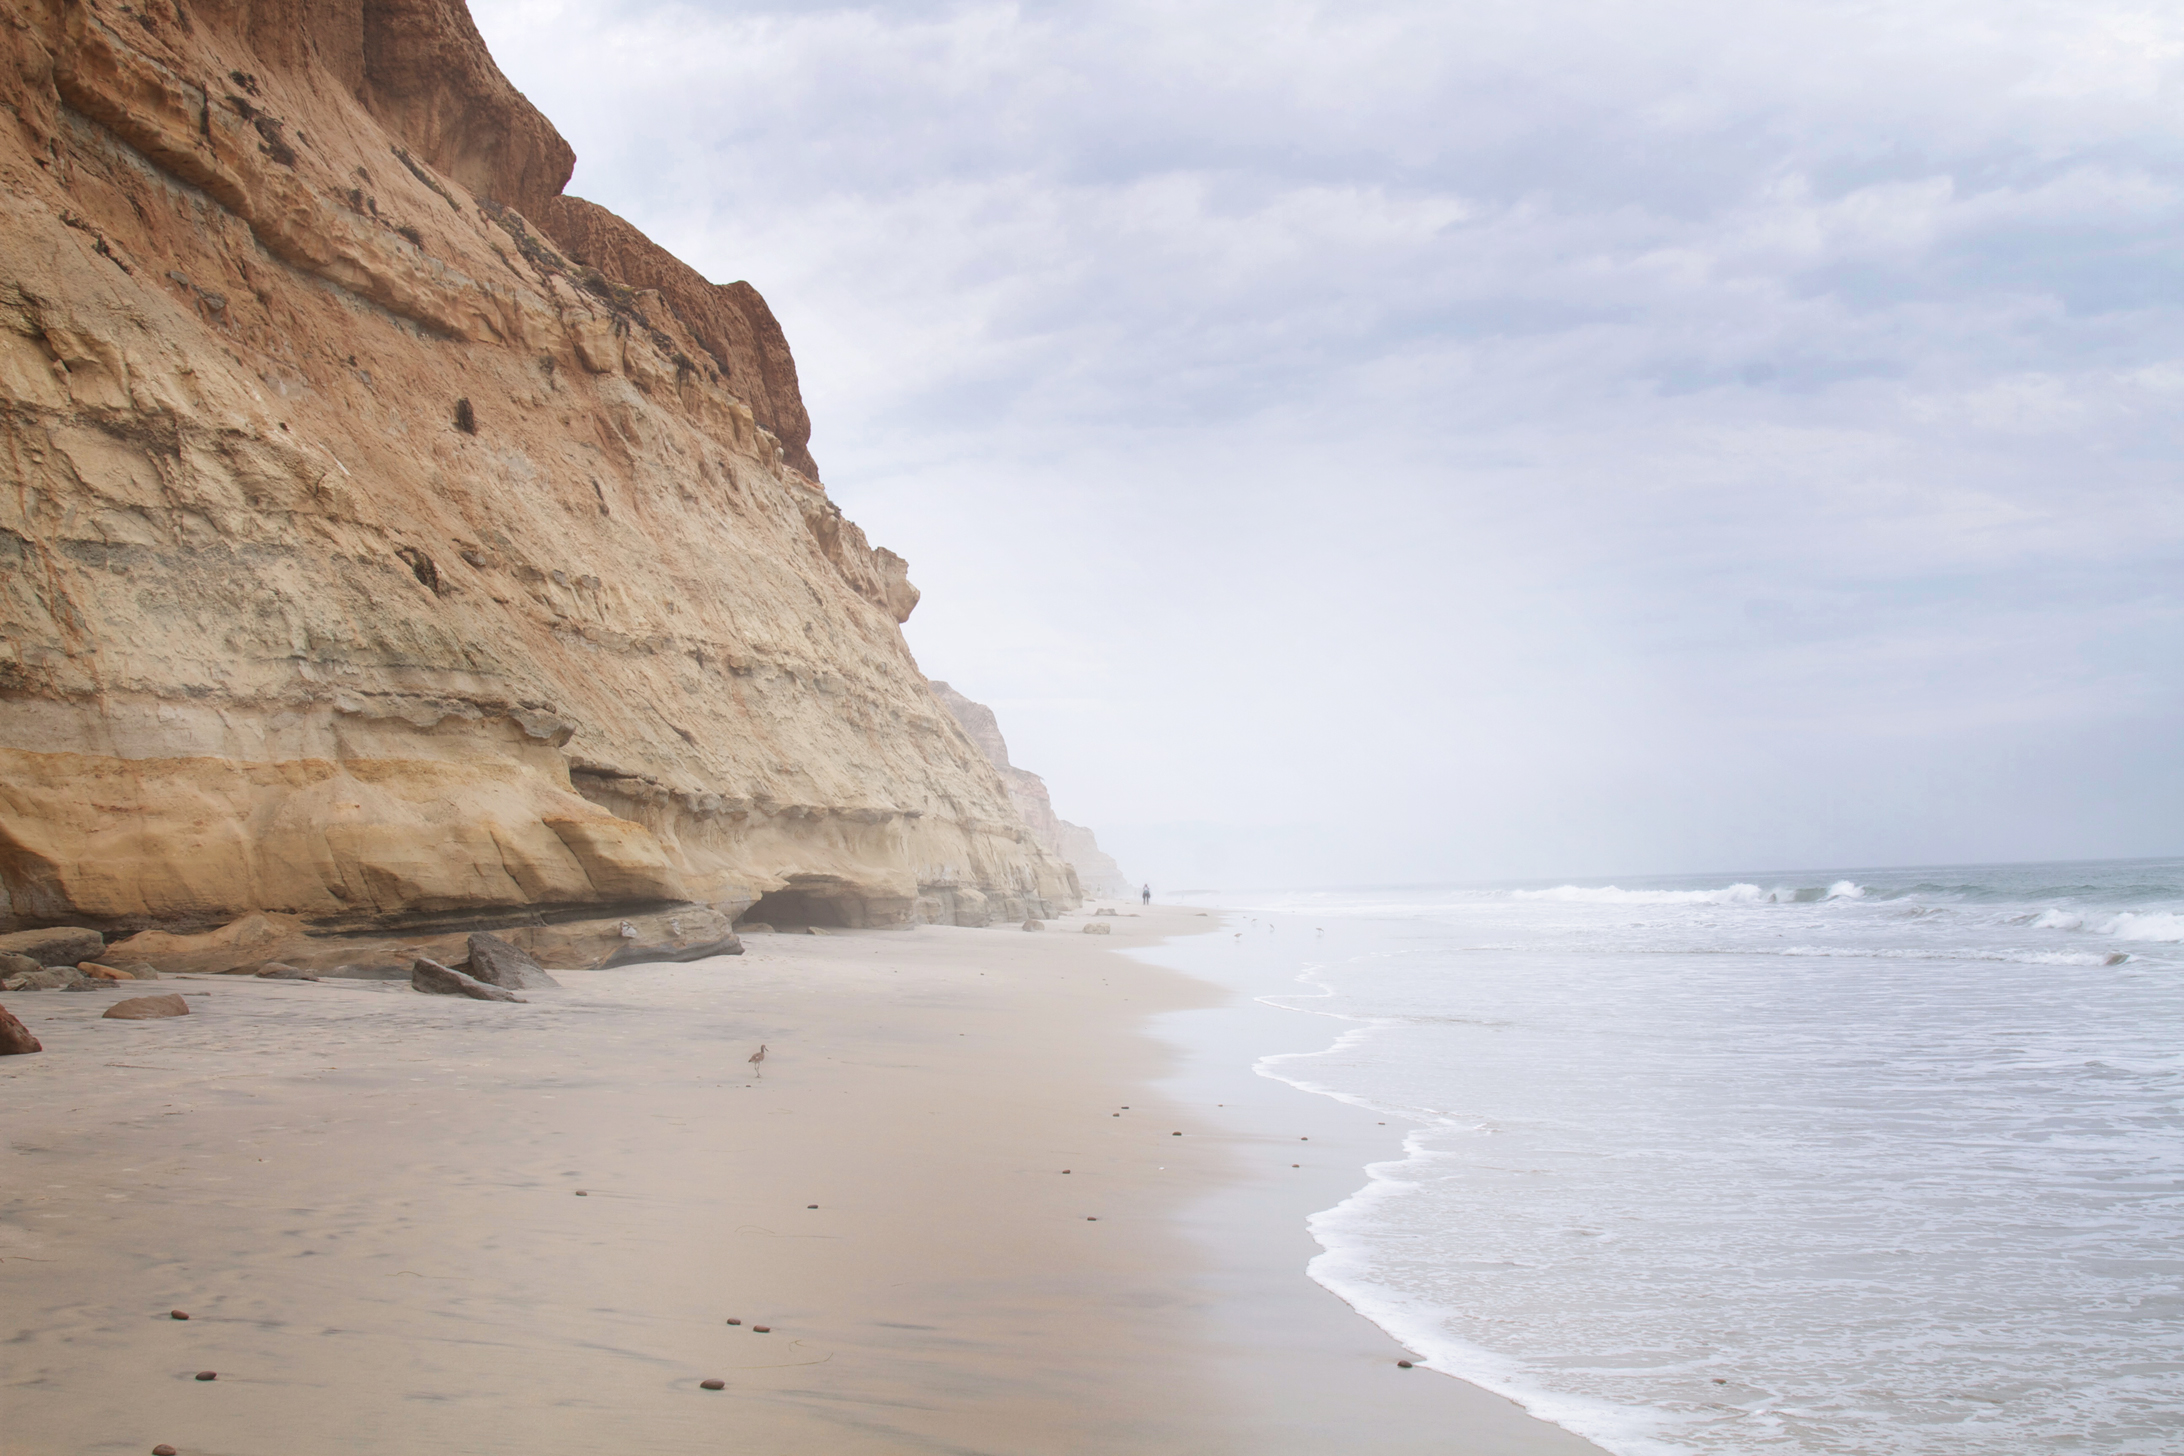 torrey pines beach - san diego, california